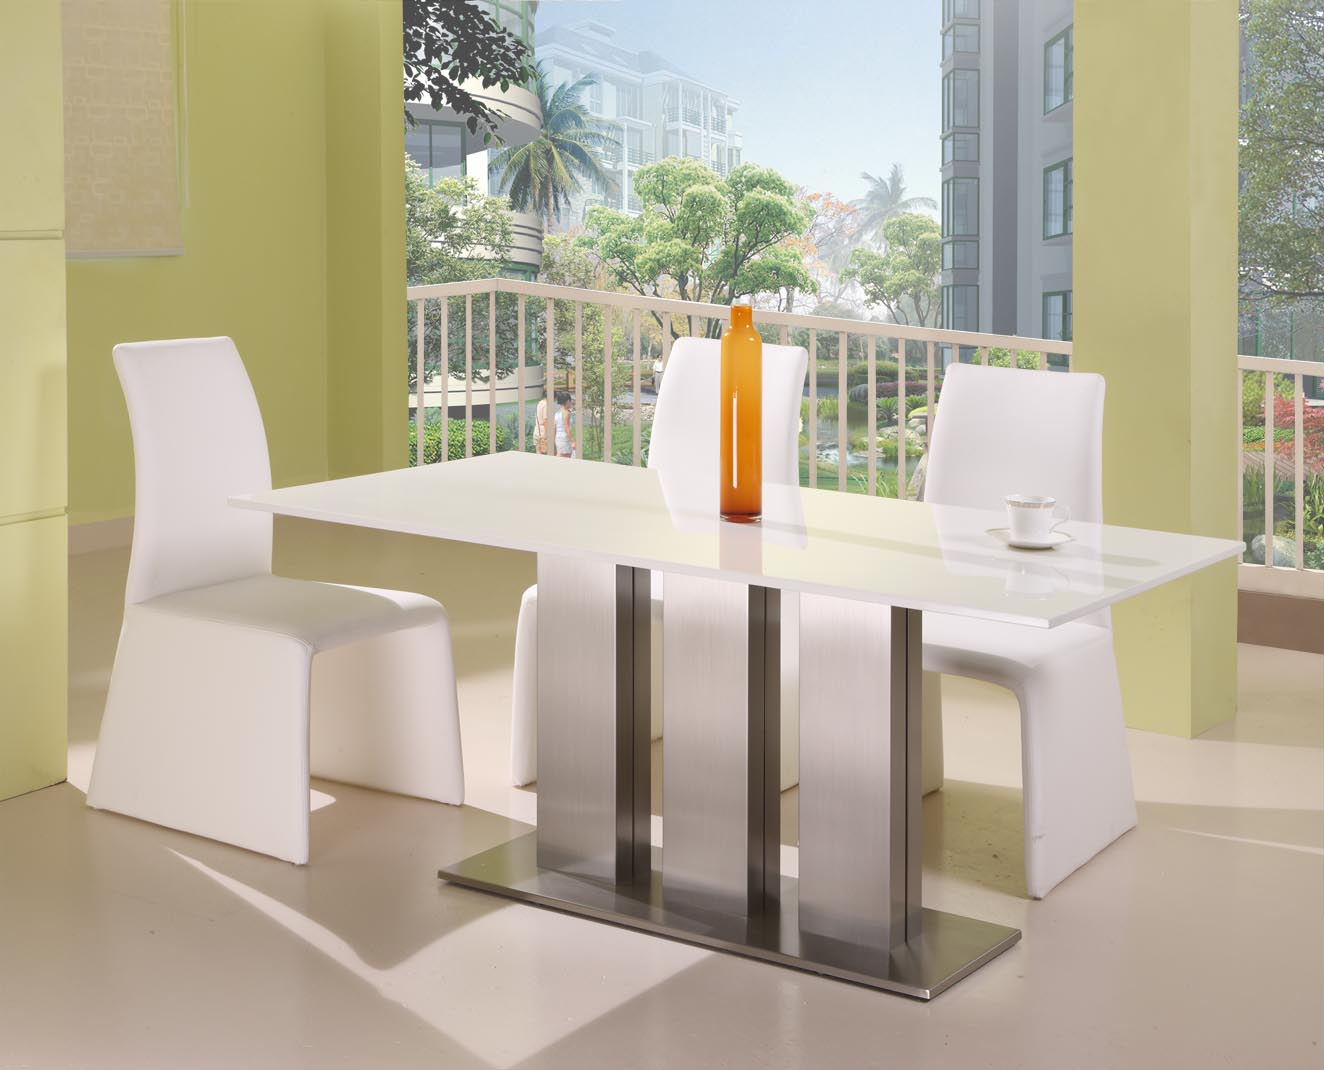 White Marble Dining Table Dining Room Furniture Wood Seat Cushions White Wood Dining Table And Chairs For Interior